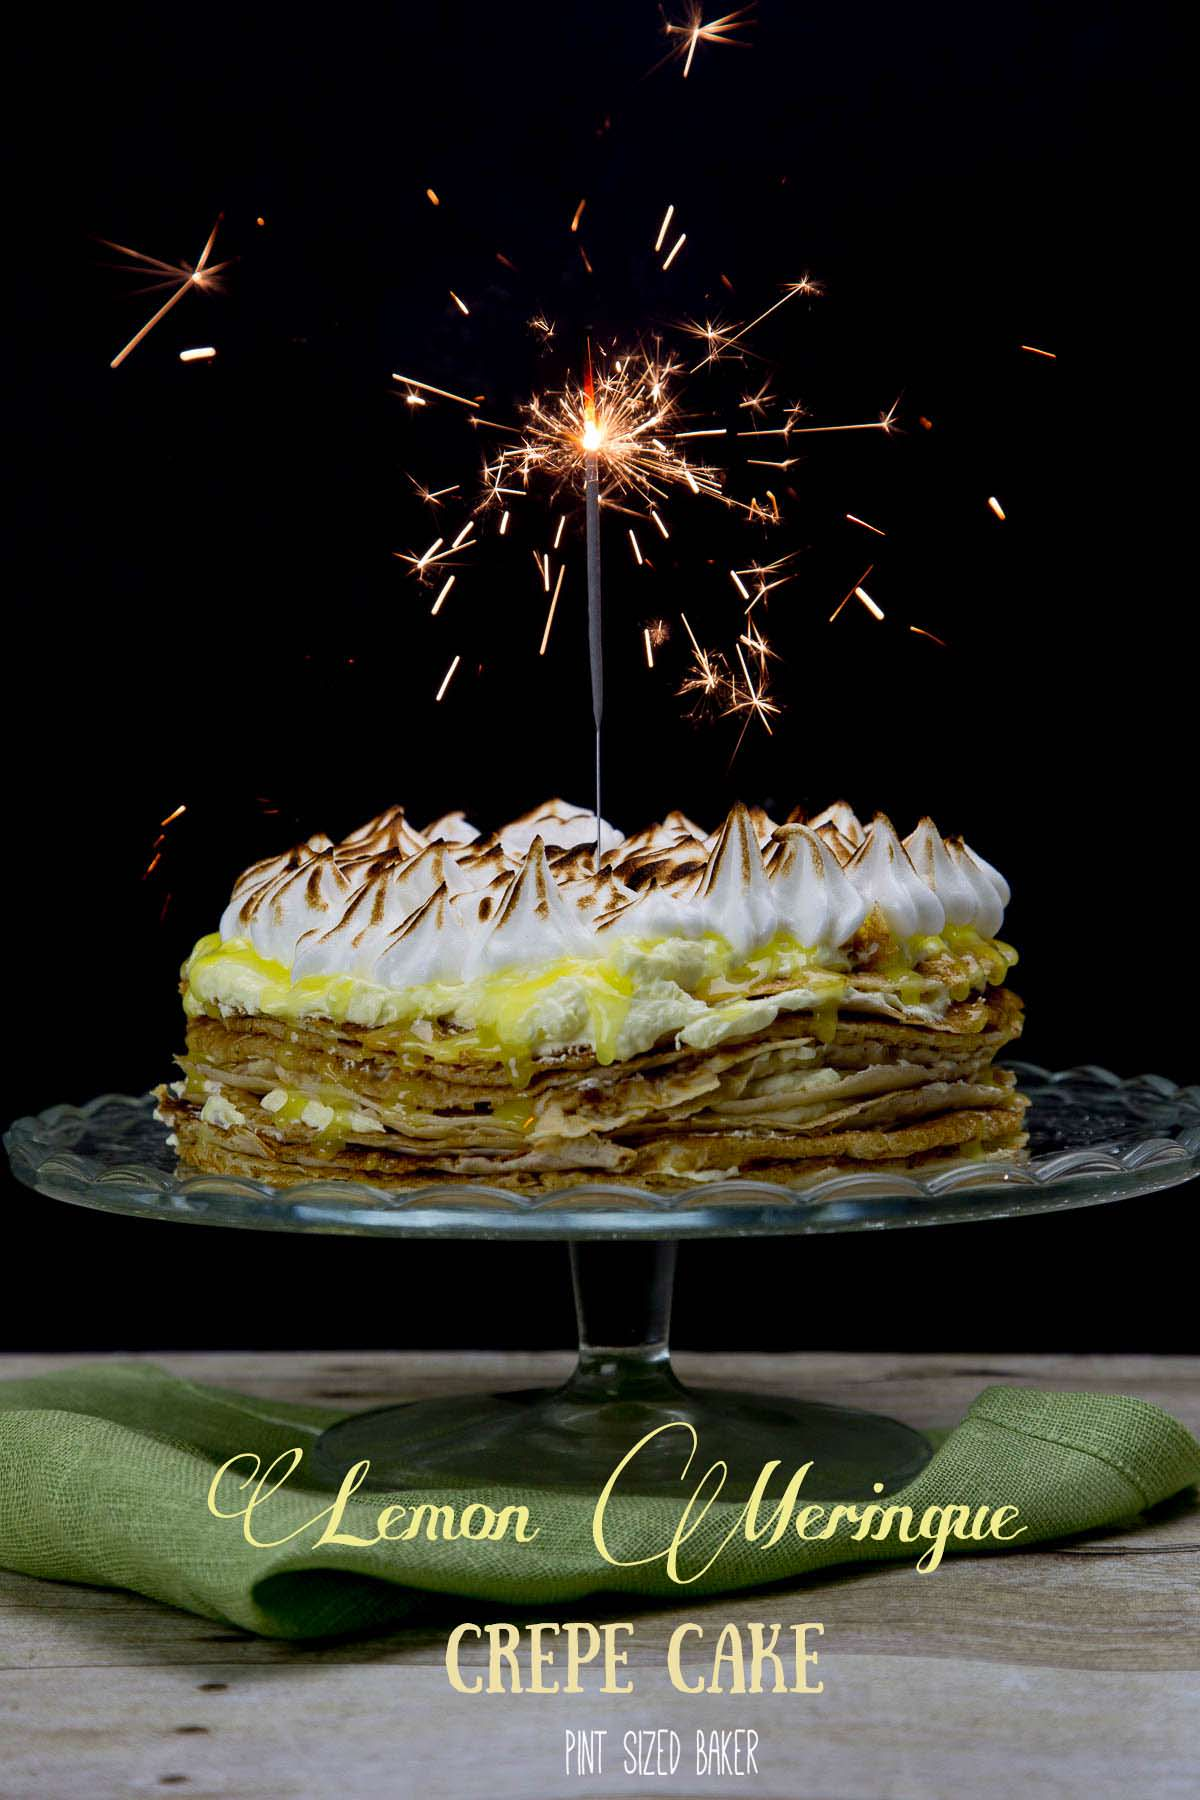 Celebrate a special occasion with a Lemon Meringue Crepe Cake! 15 Crepes layered with lemon cream and topped with meringue! Enjoy!